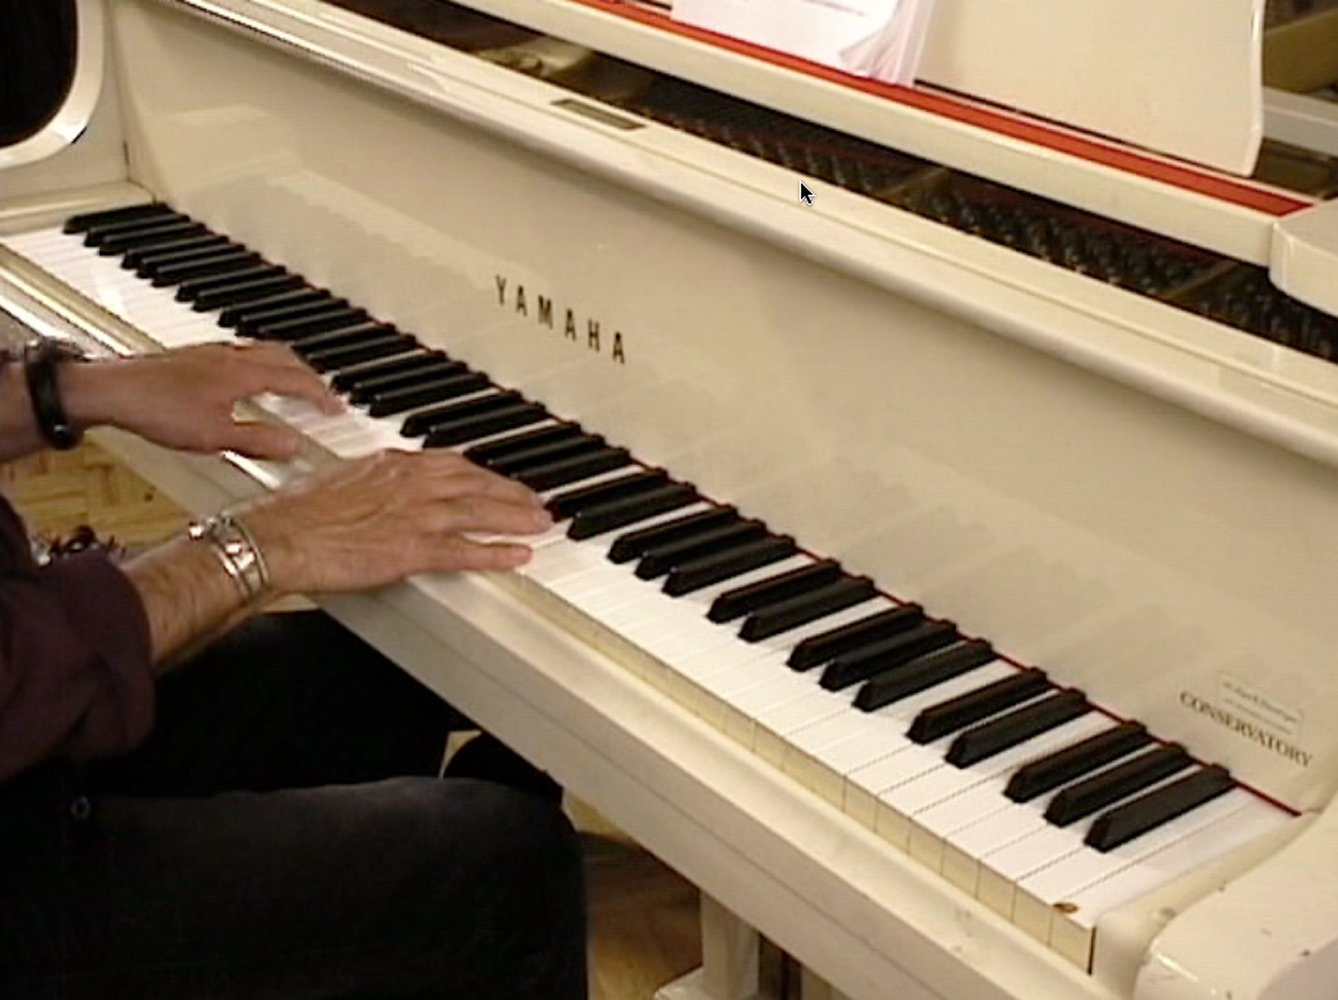 Amazon best learn to play the piano lessons for beginners amazon best learn to play the piano lessons for beginners perfect video for the piano keyboard teaching detailed scales notes chords progressions baditri Choice Image